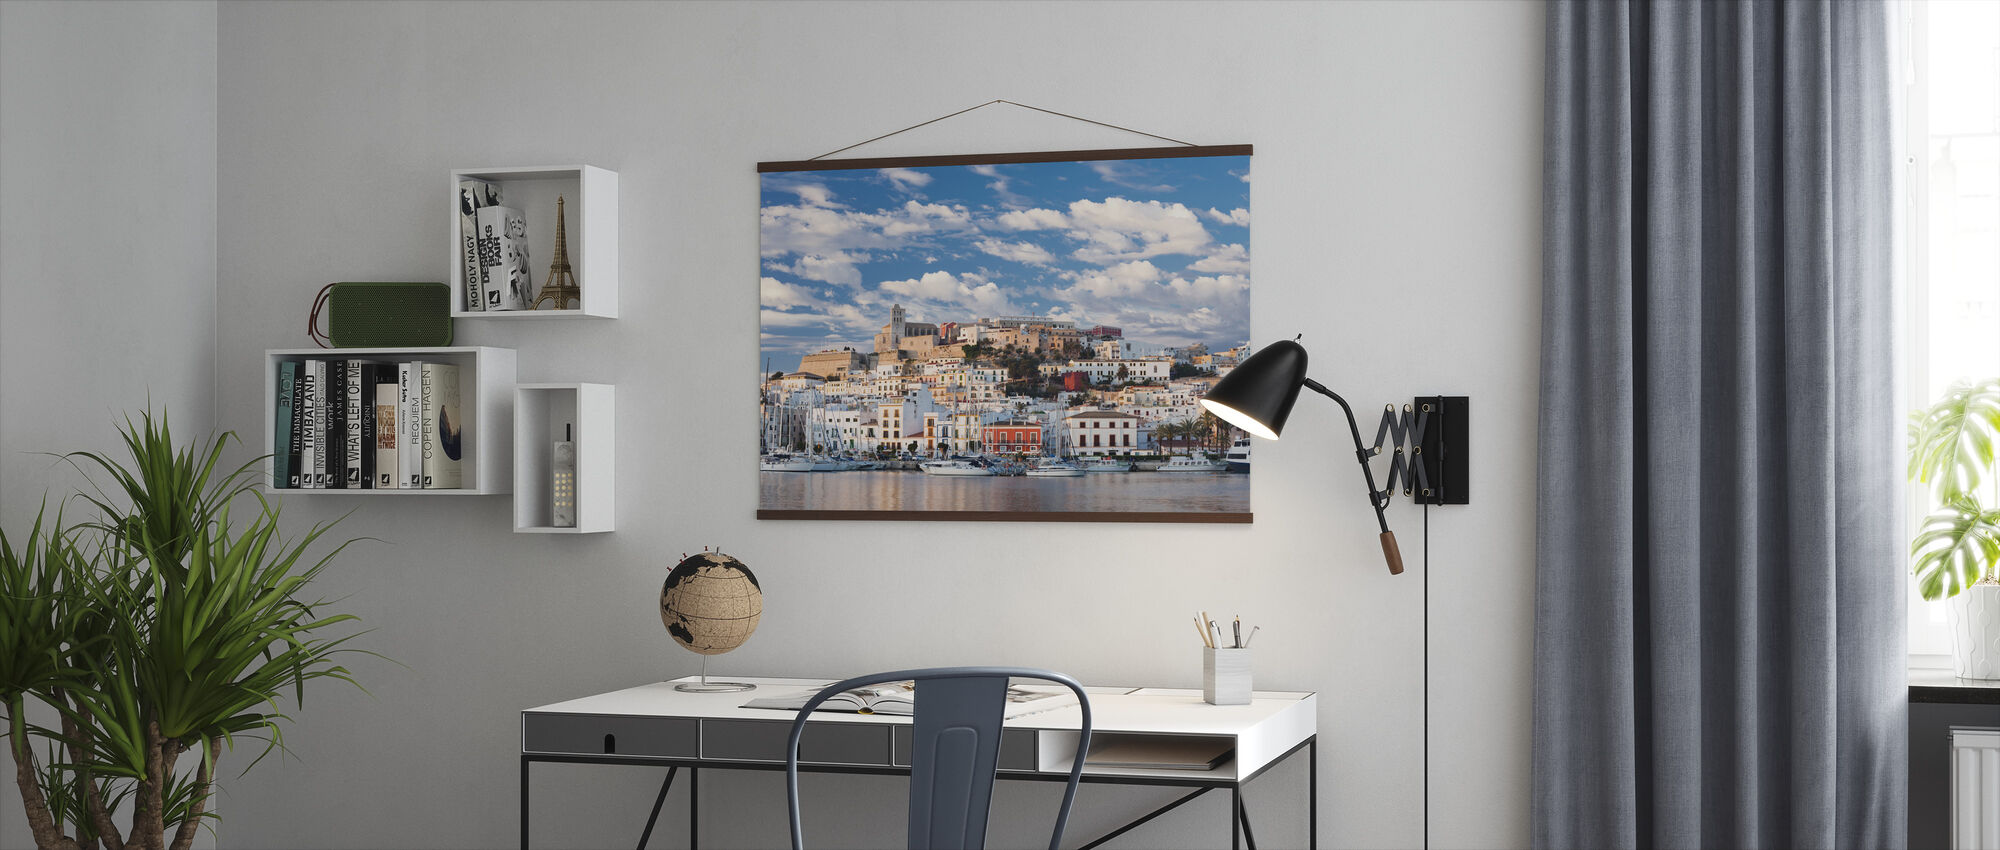 Ibiza Town - Poster - Office